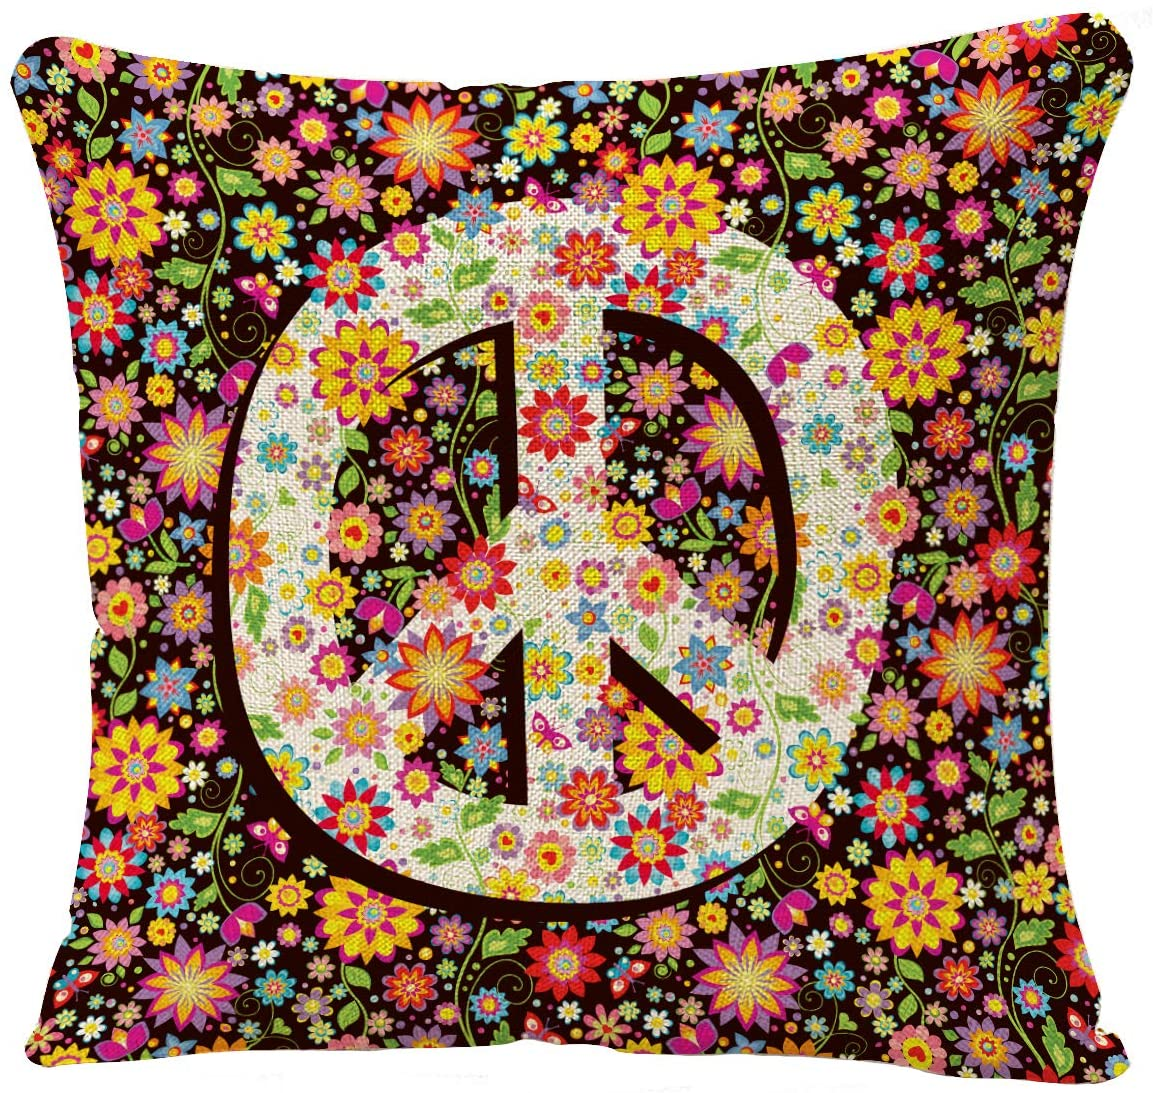 YGGQF Throw Pillow Covers Pillowcase Tip Vintage Colors Peace Flower Hippie Throw Pillow Case Decorative Cushion Cover Sofa Bed 18 x 18 Inch